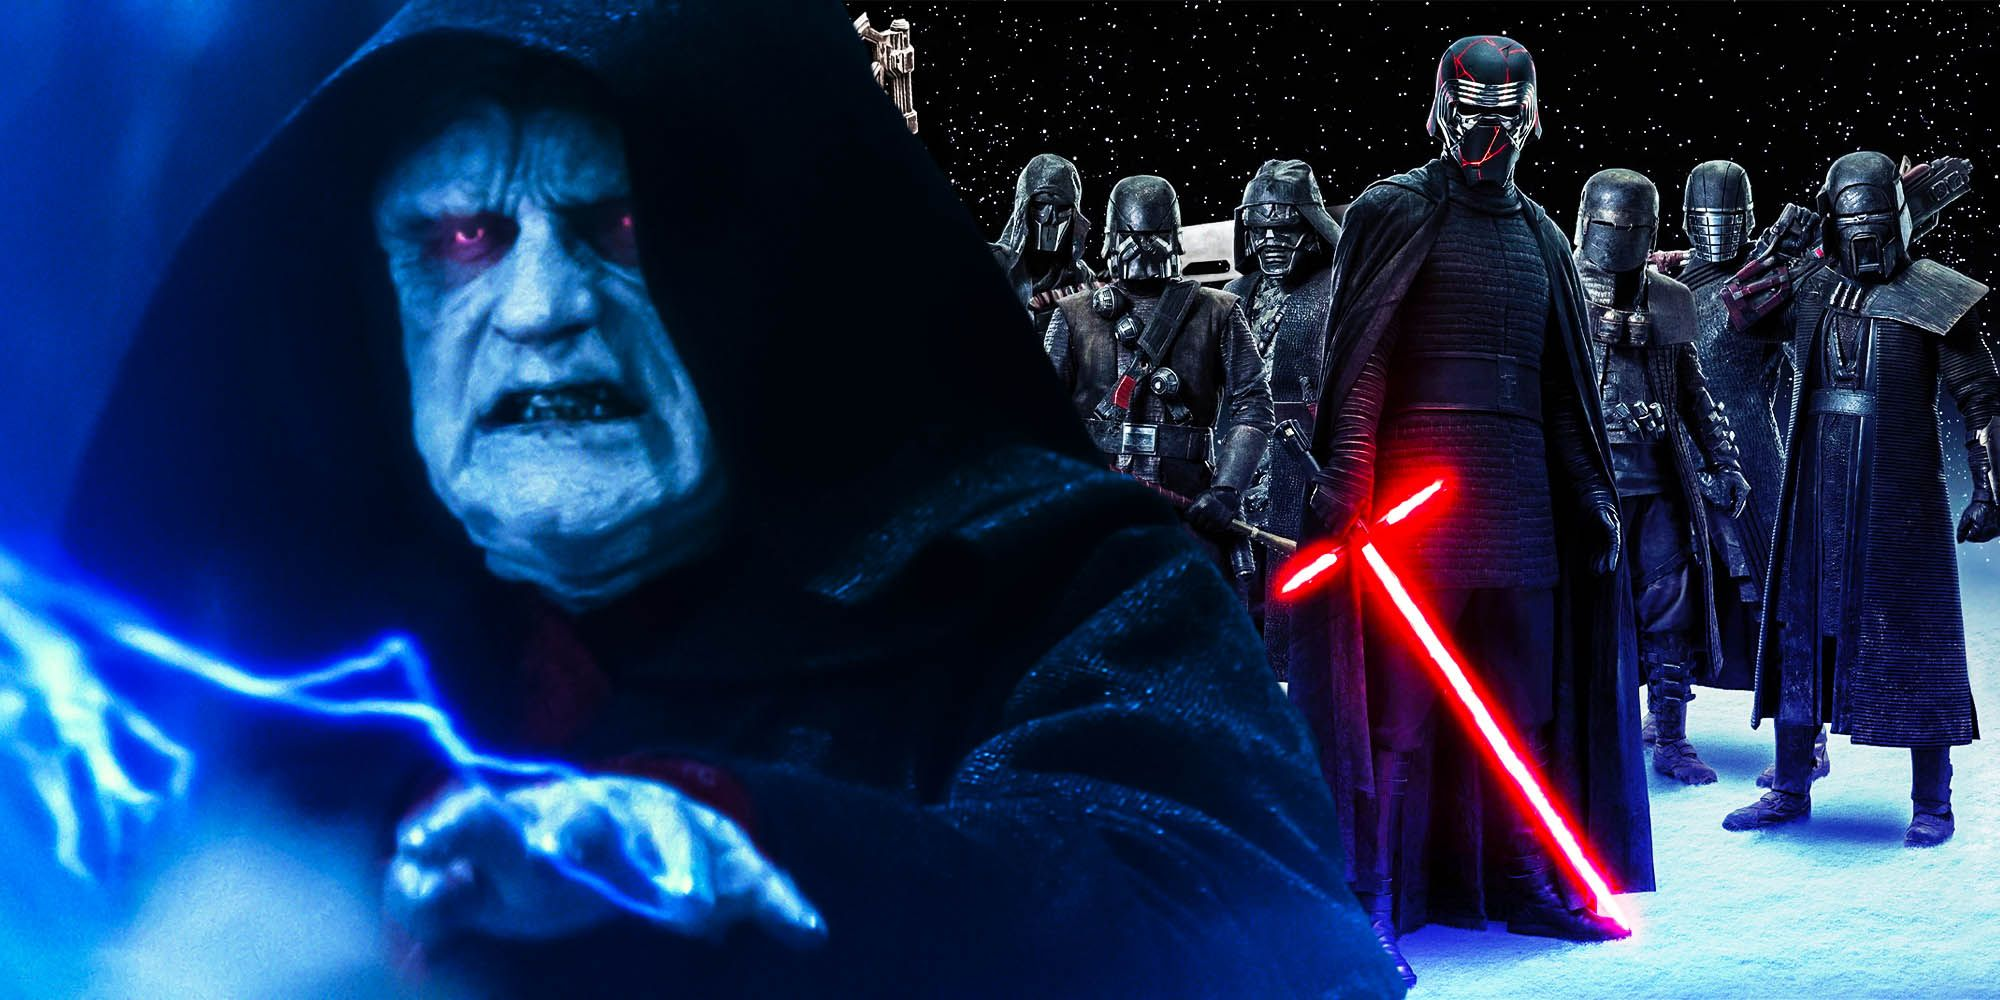 Star Wars: How The Knights of Ren Are Different From The Sith